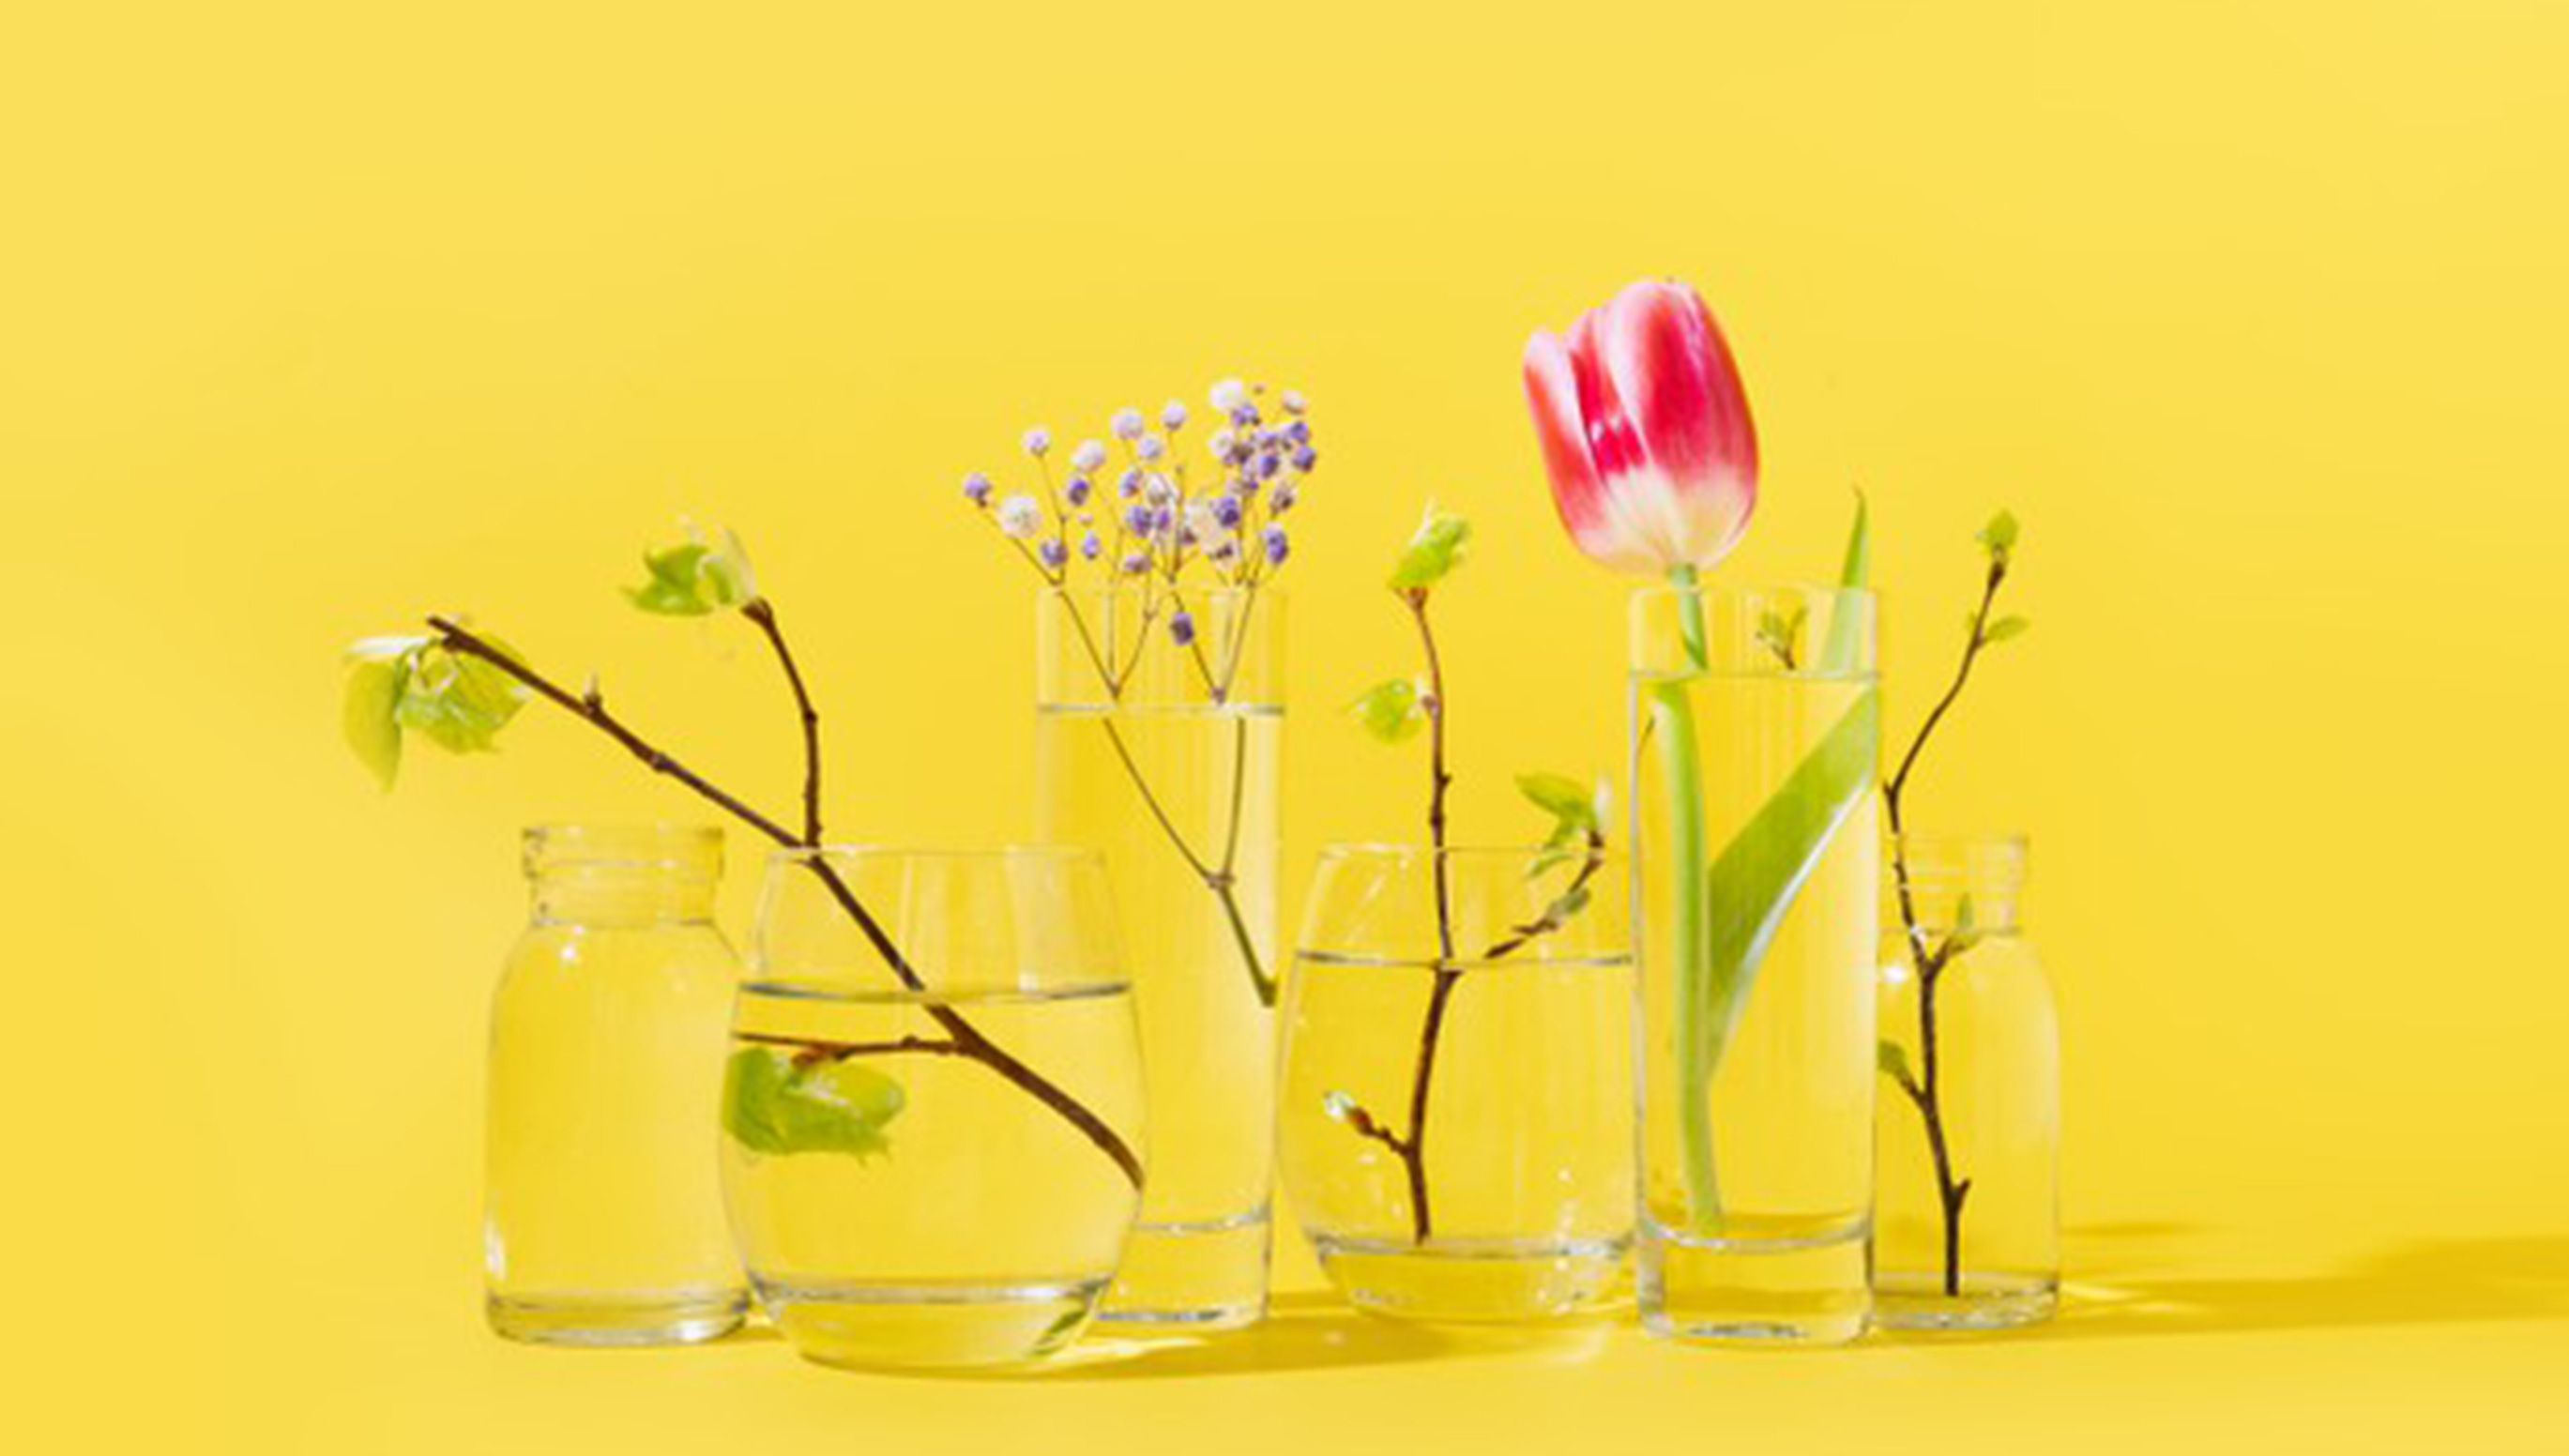 HHow to Take Care of Flowers in Room Temperature